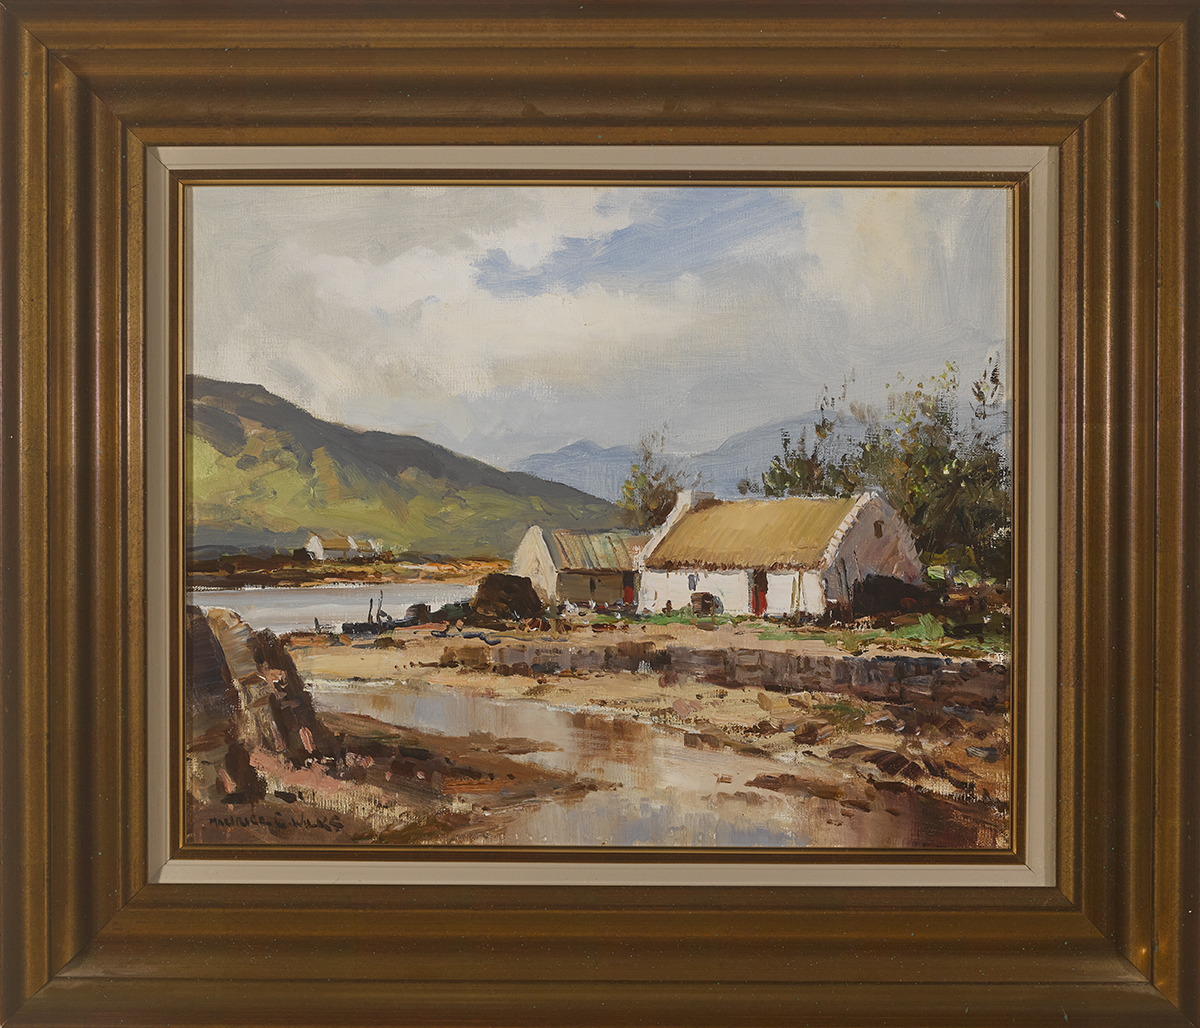 Lot 11 - Maurice Canning Wilks RUA ARHA (1910-1984)ON INNISHNEE, COUNTY GALWAY oil on canvas signed lower